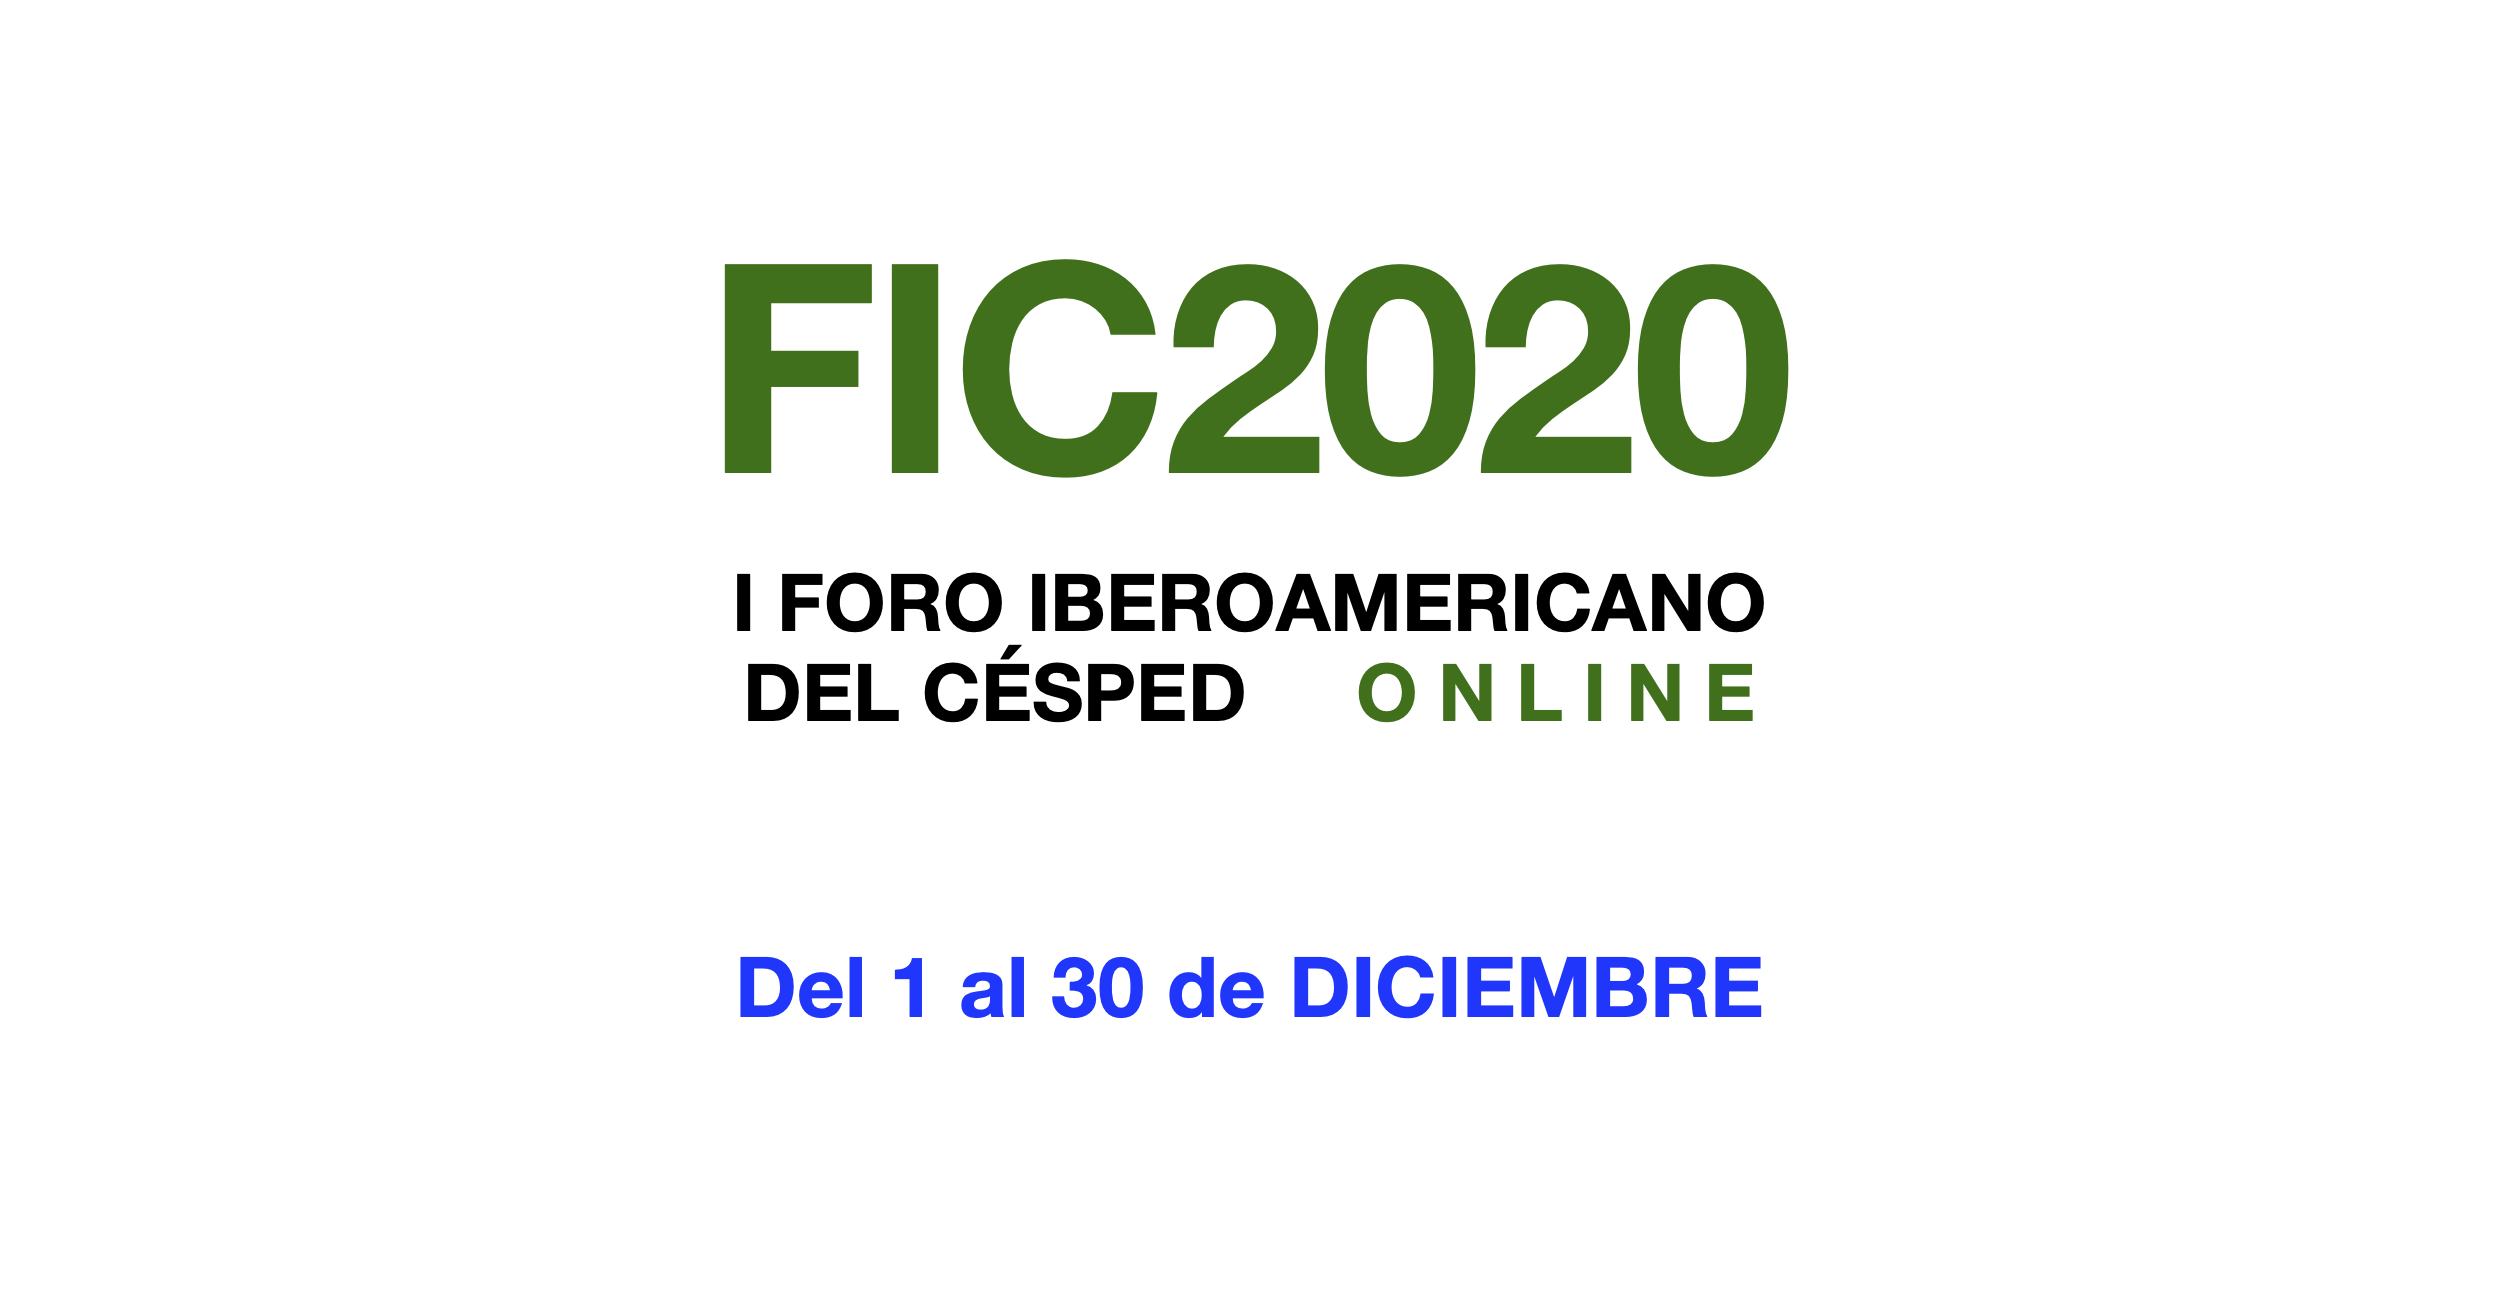 Las conferencias del FIC2020 superan ya las 750 visualizaciones